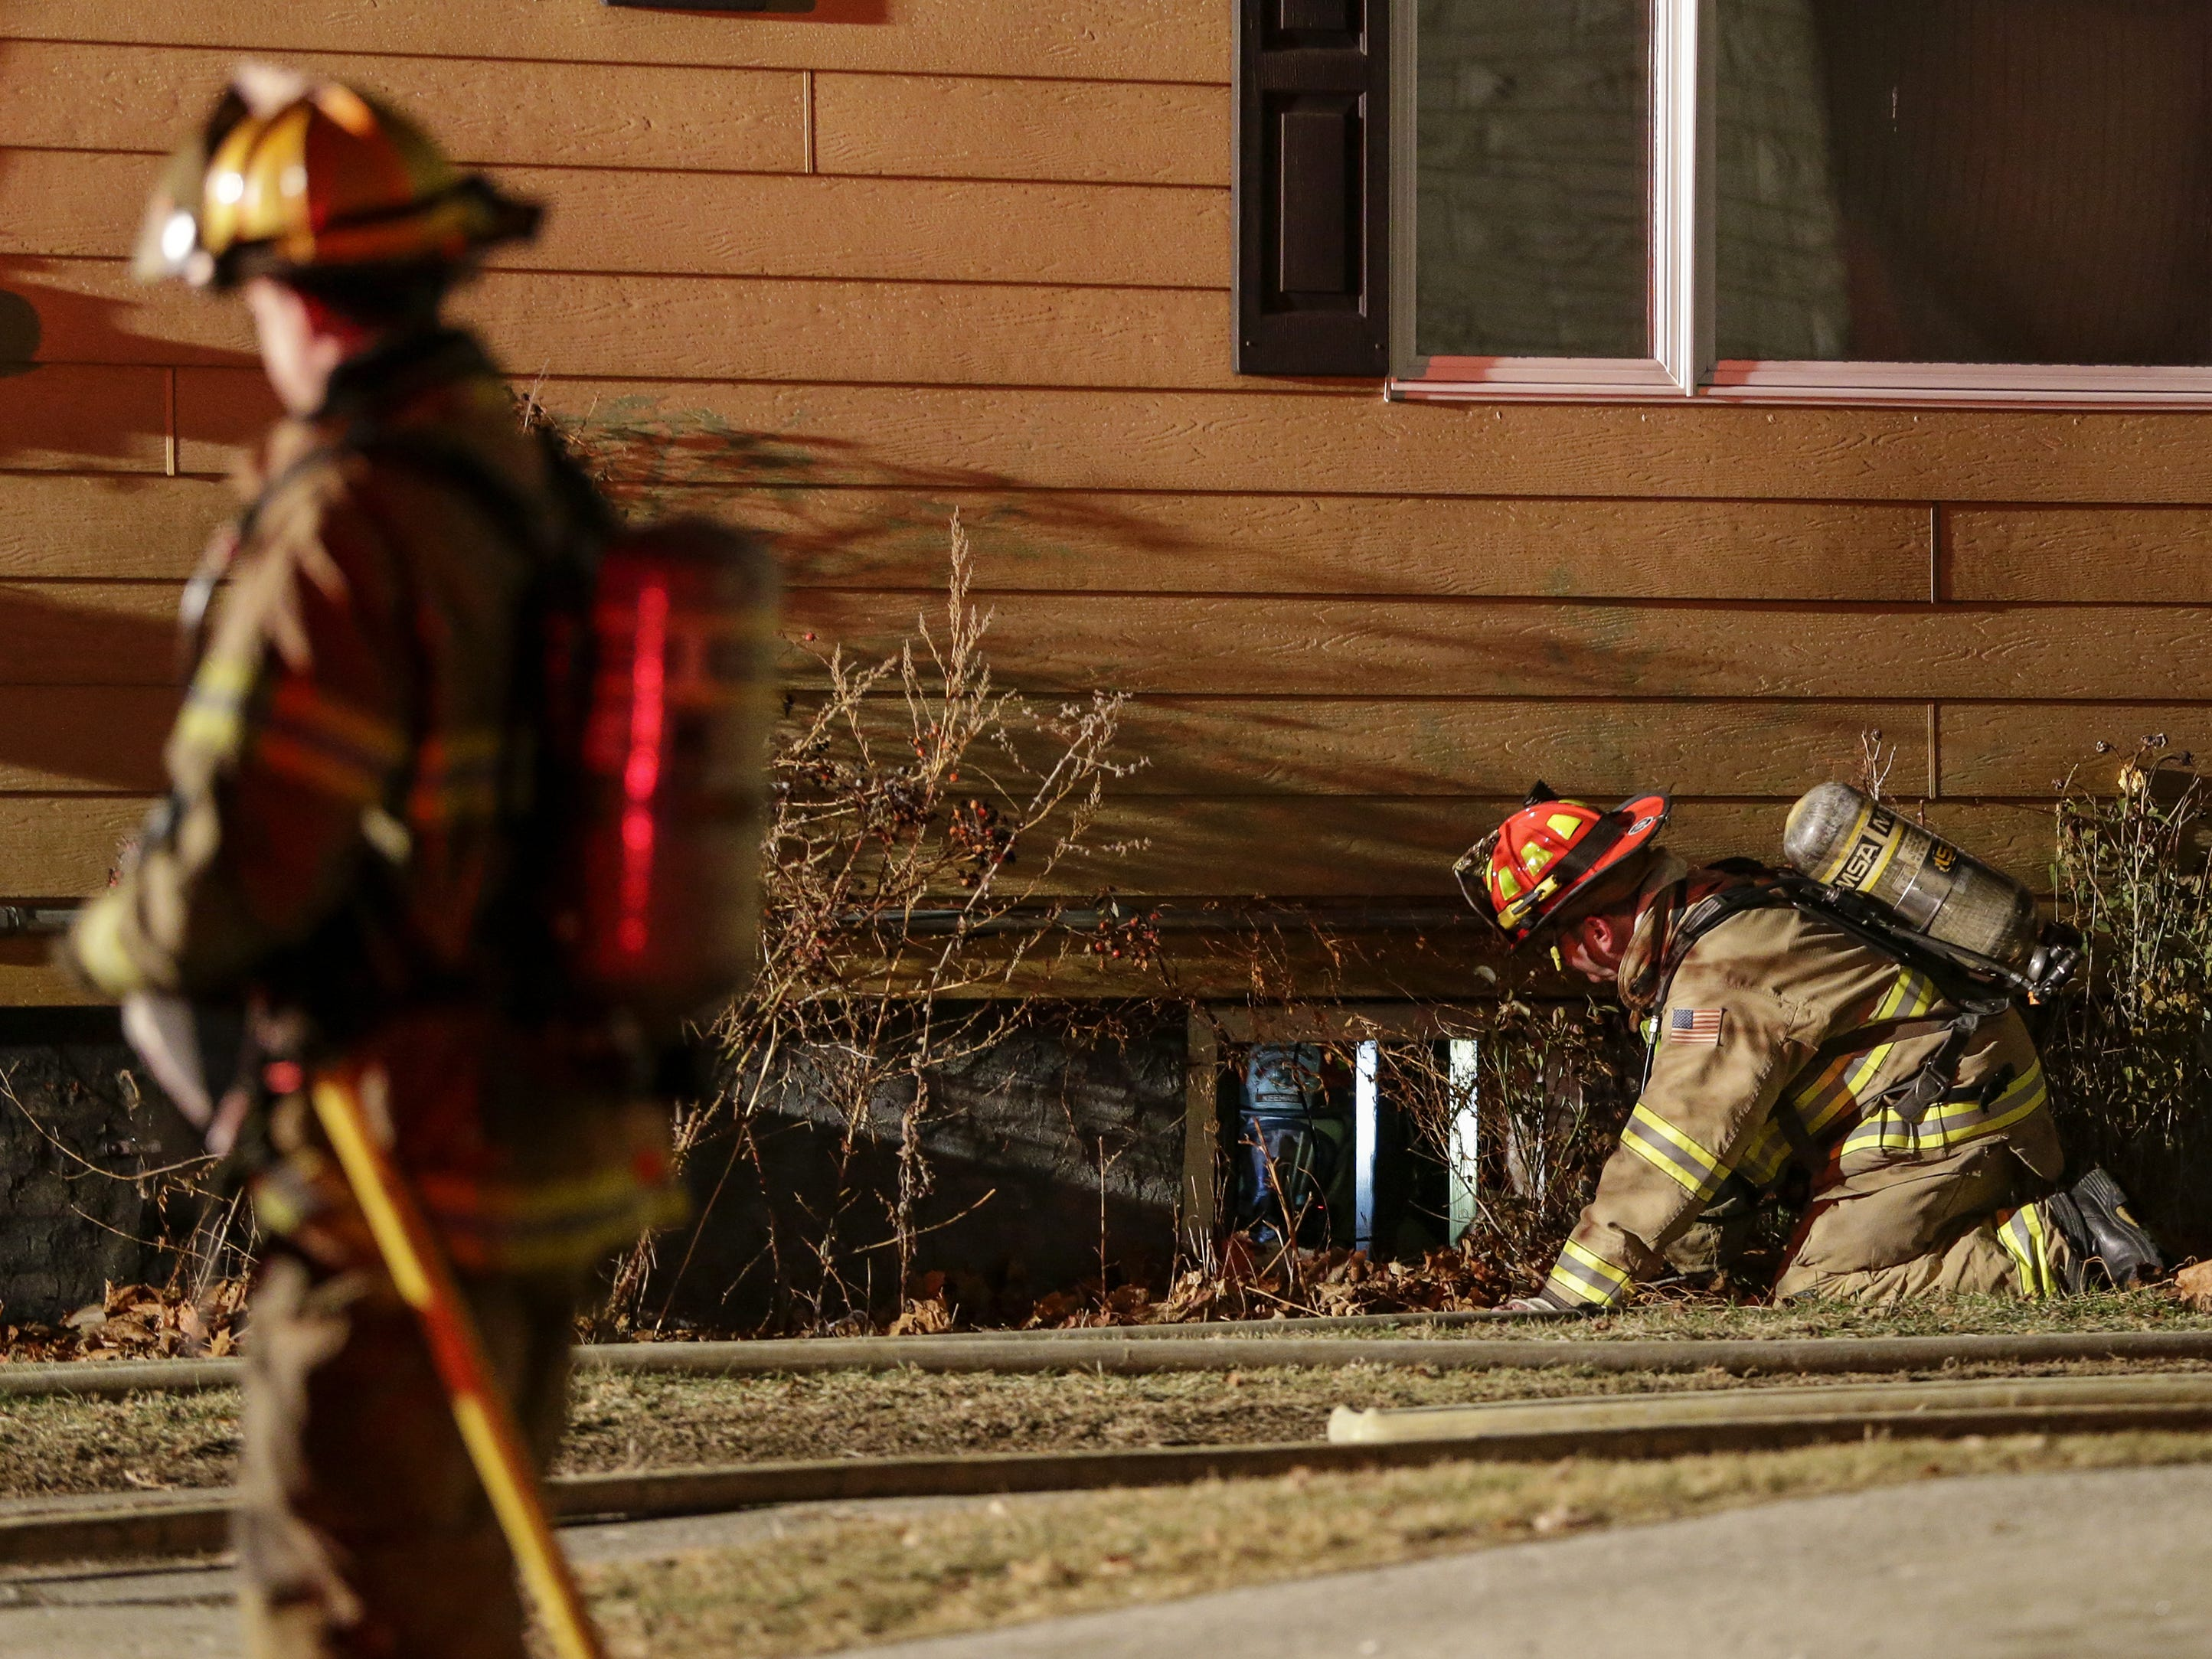 Firefighters respond to a fire at 1129 South 25th Street Tuesday, December 18, 2018, in Manitowoc, Wis.